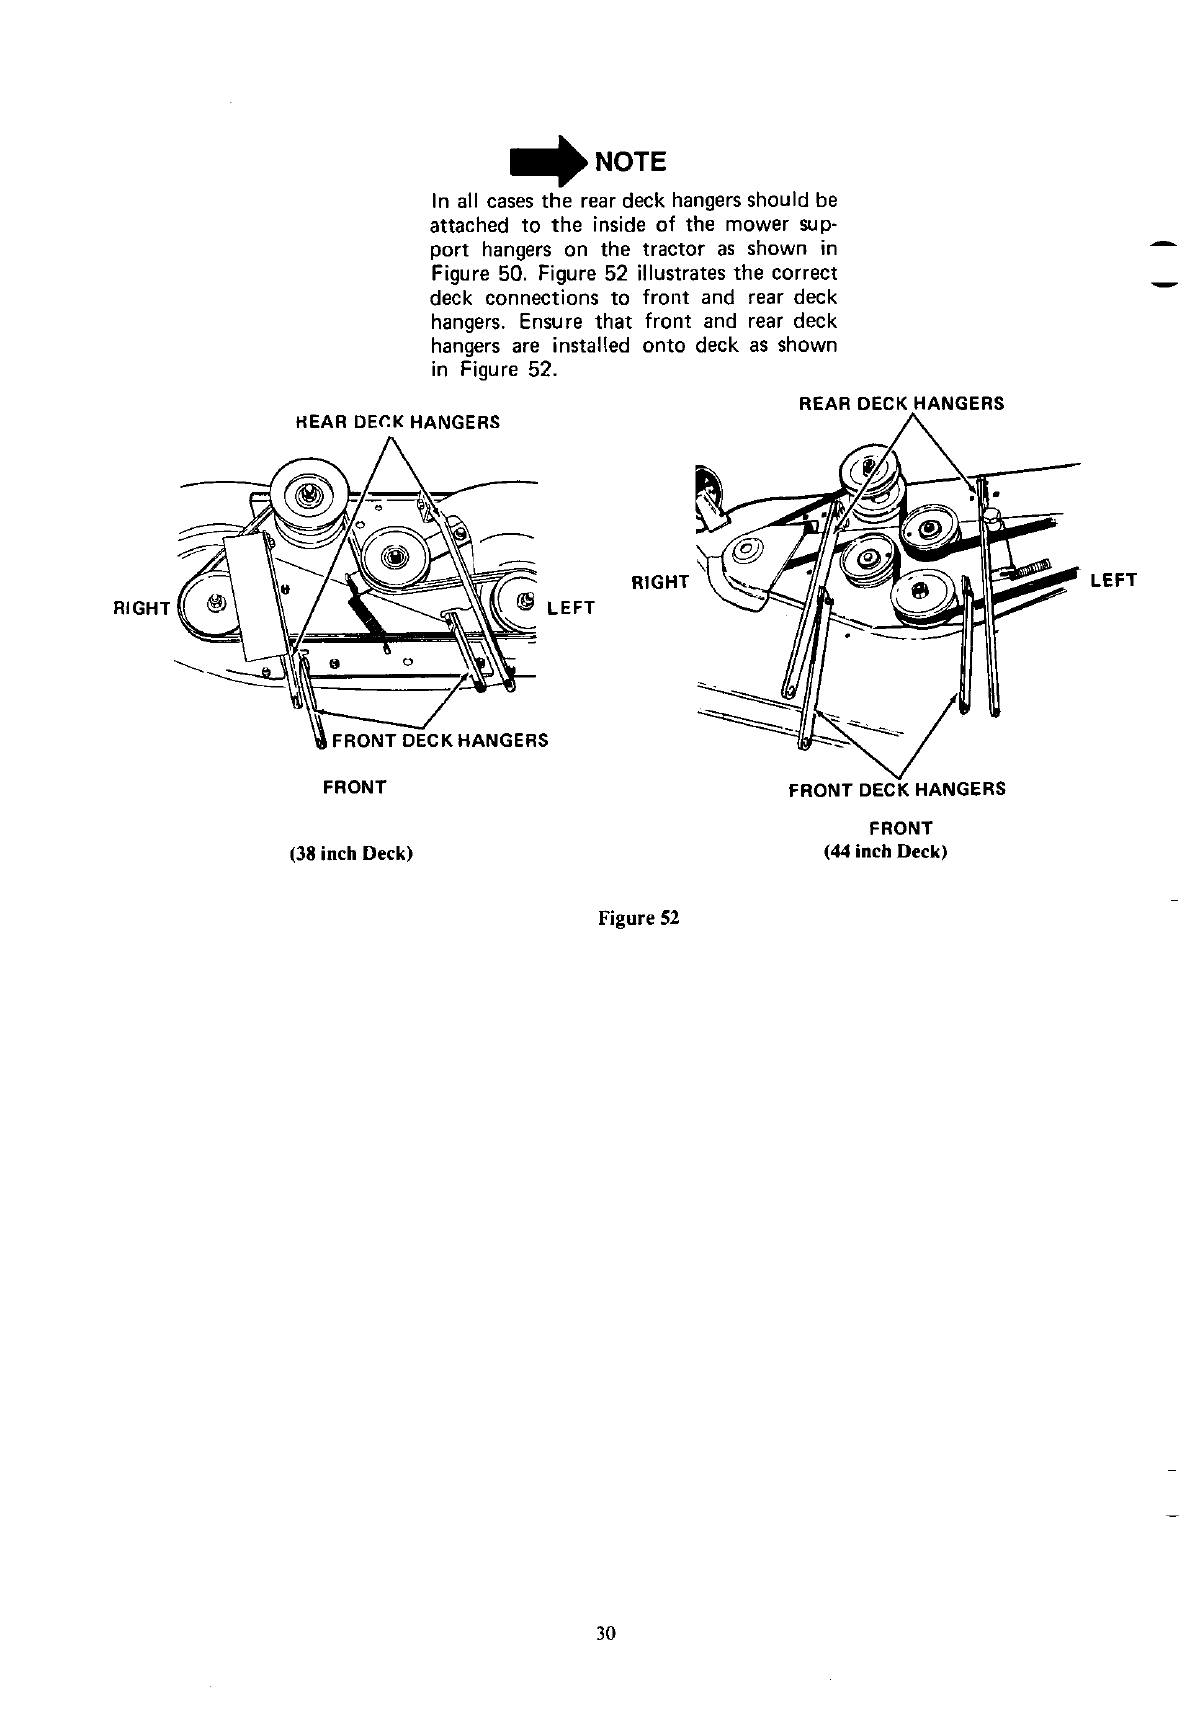 Page 30 of Cub Cadet Lawn Mower 1215 User Guide